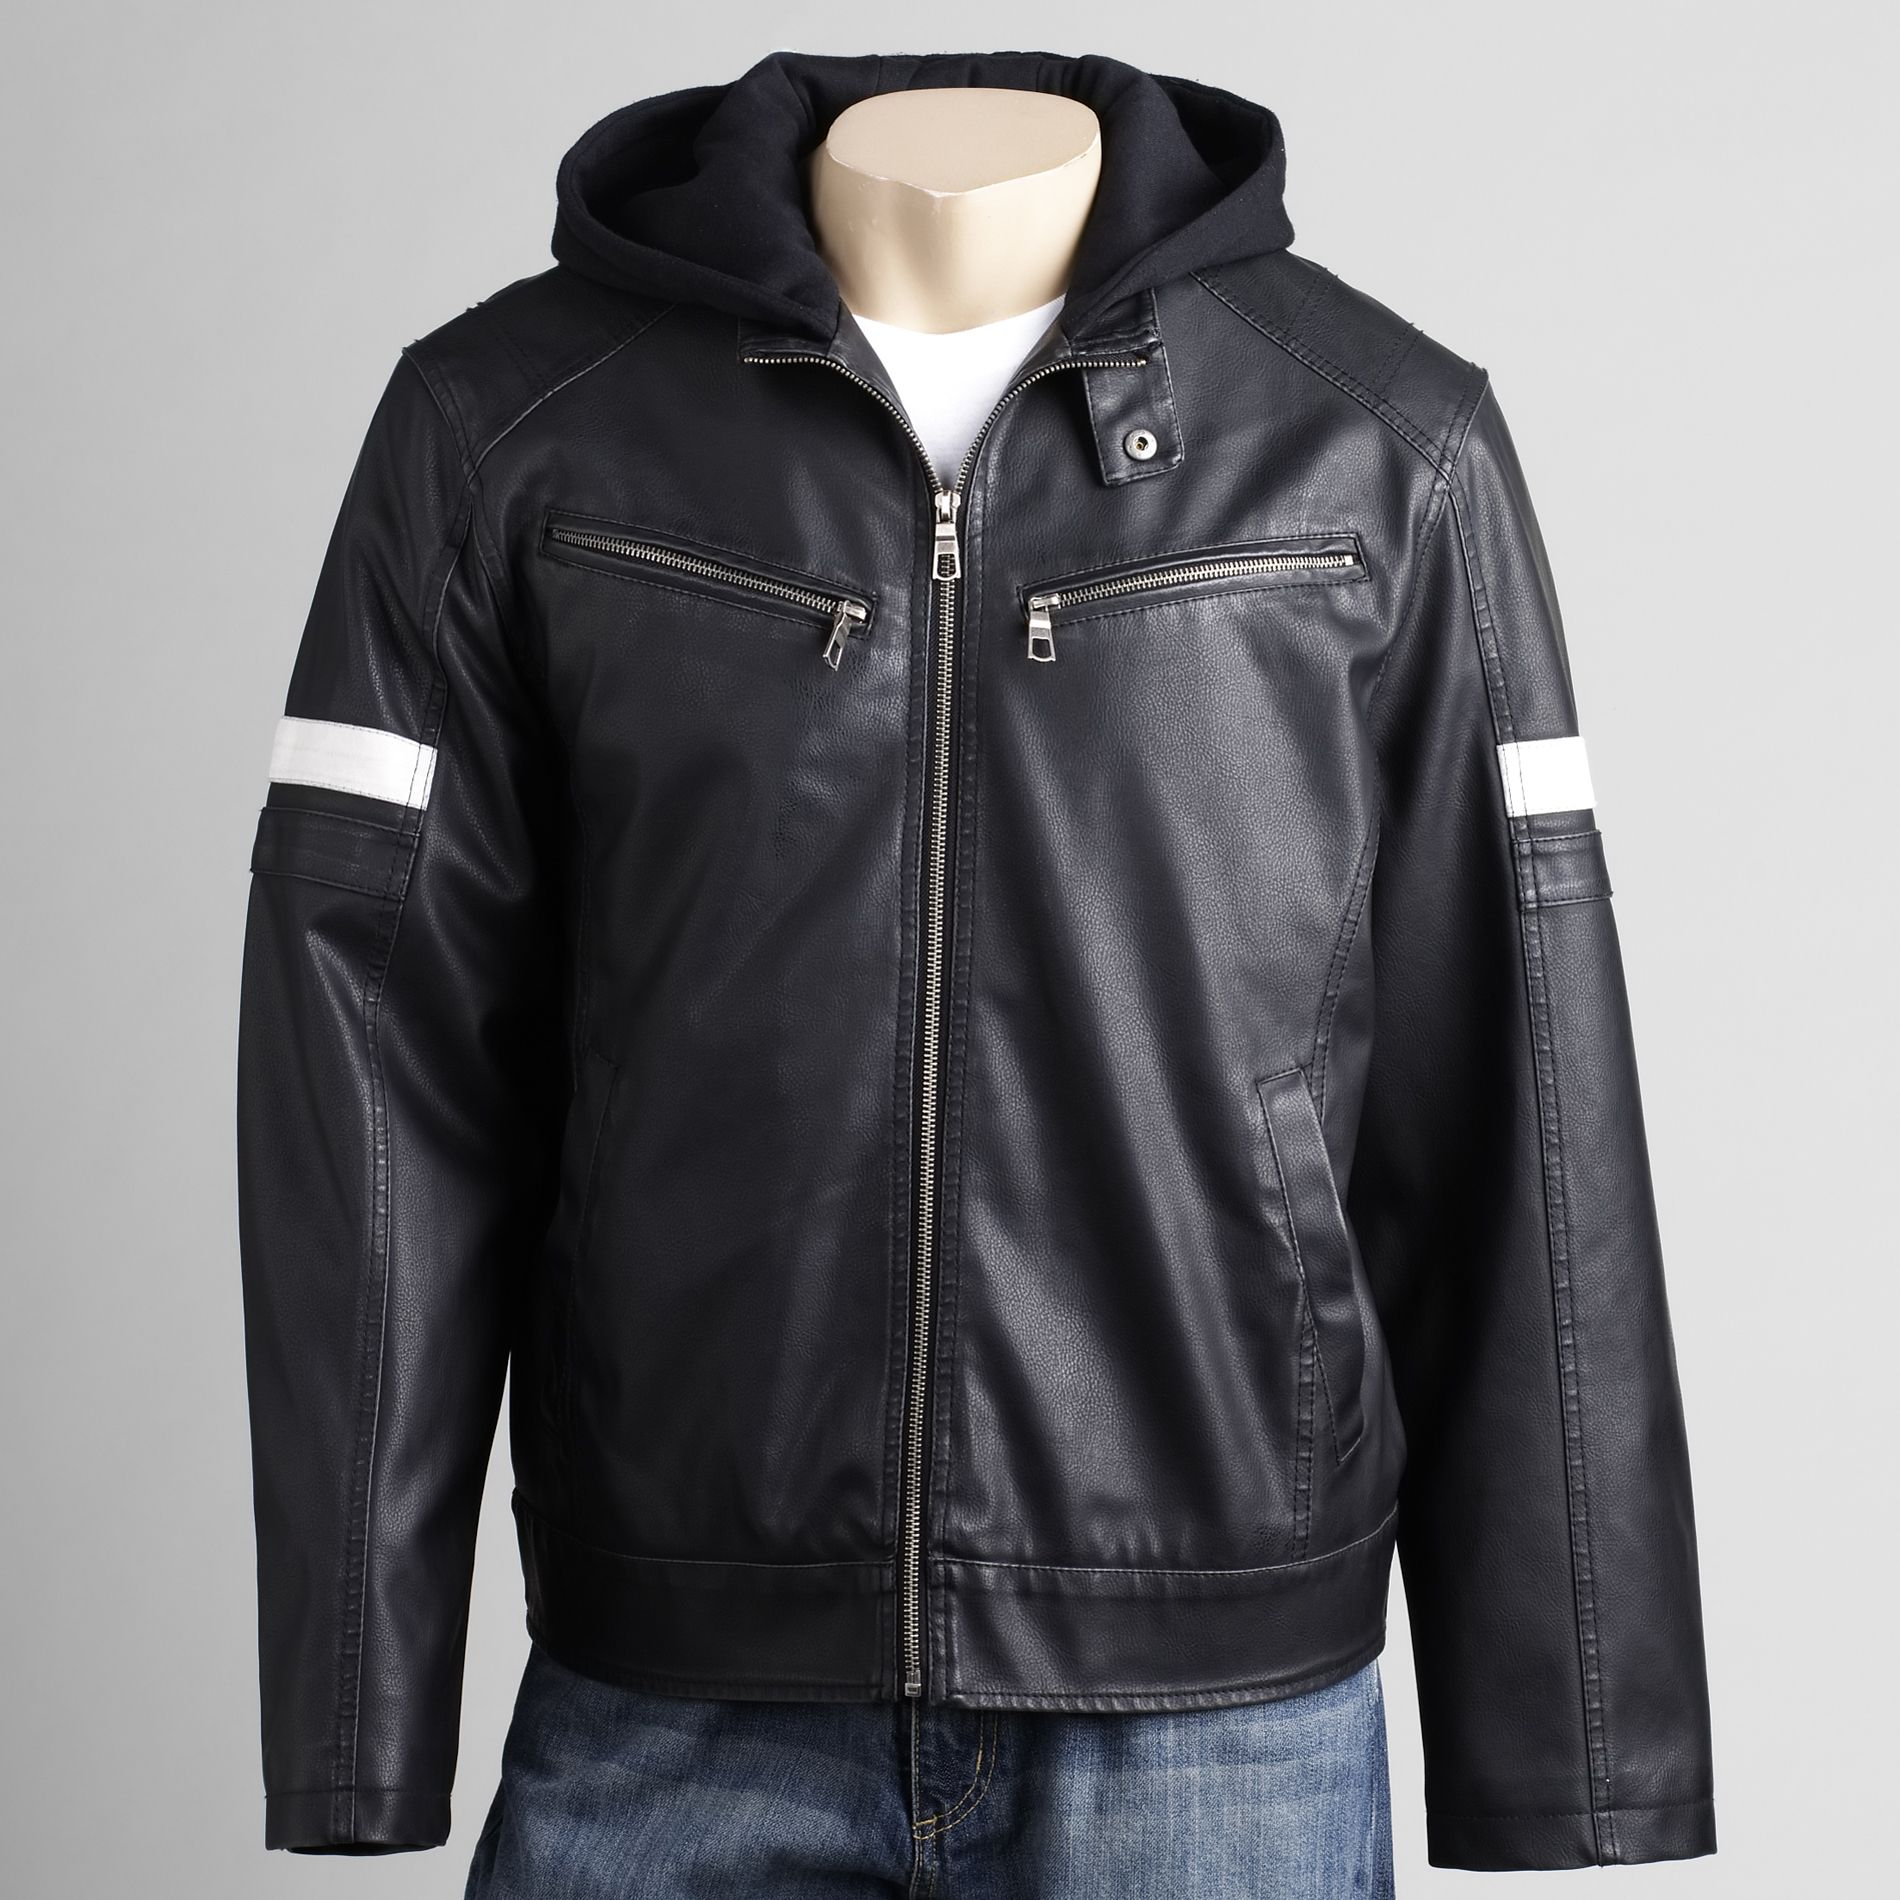 Whispering Smith Mens Faux Leather Jacket With Hood